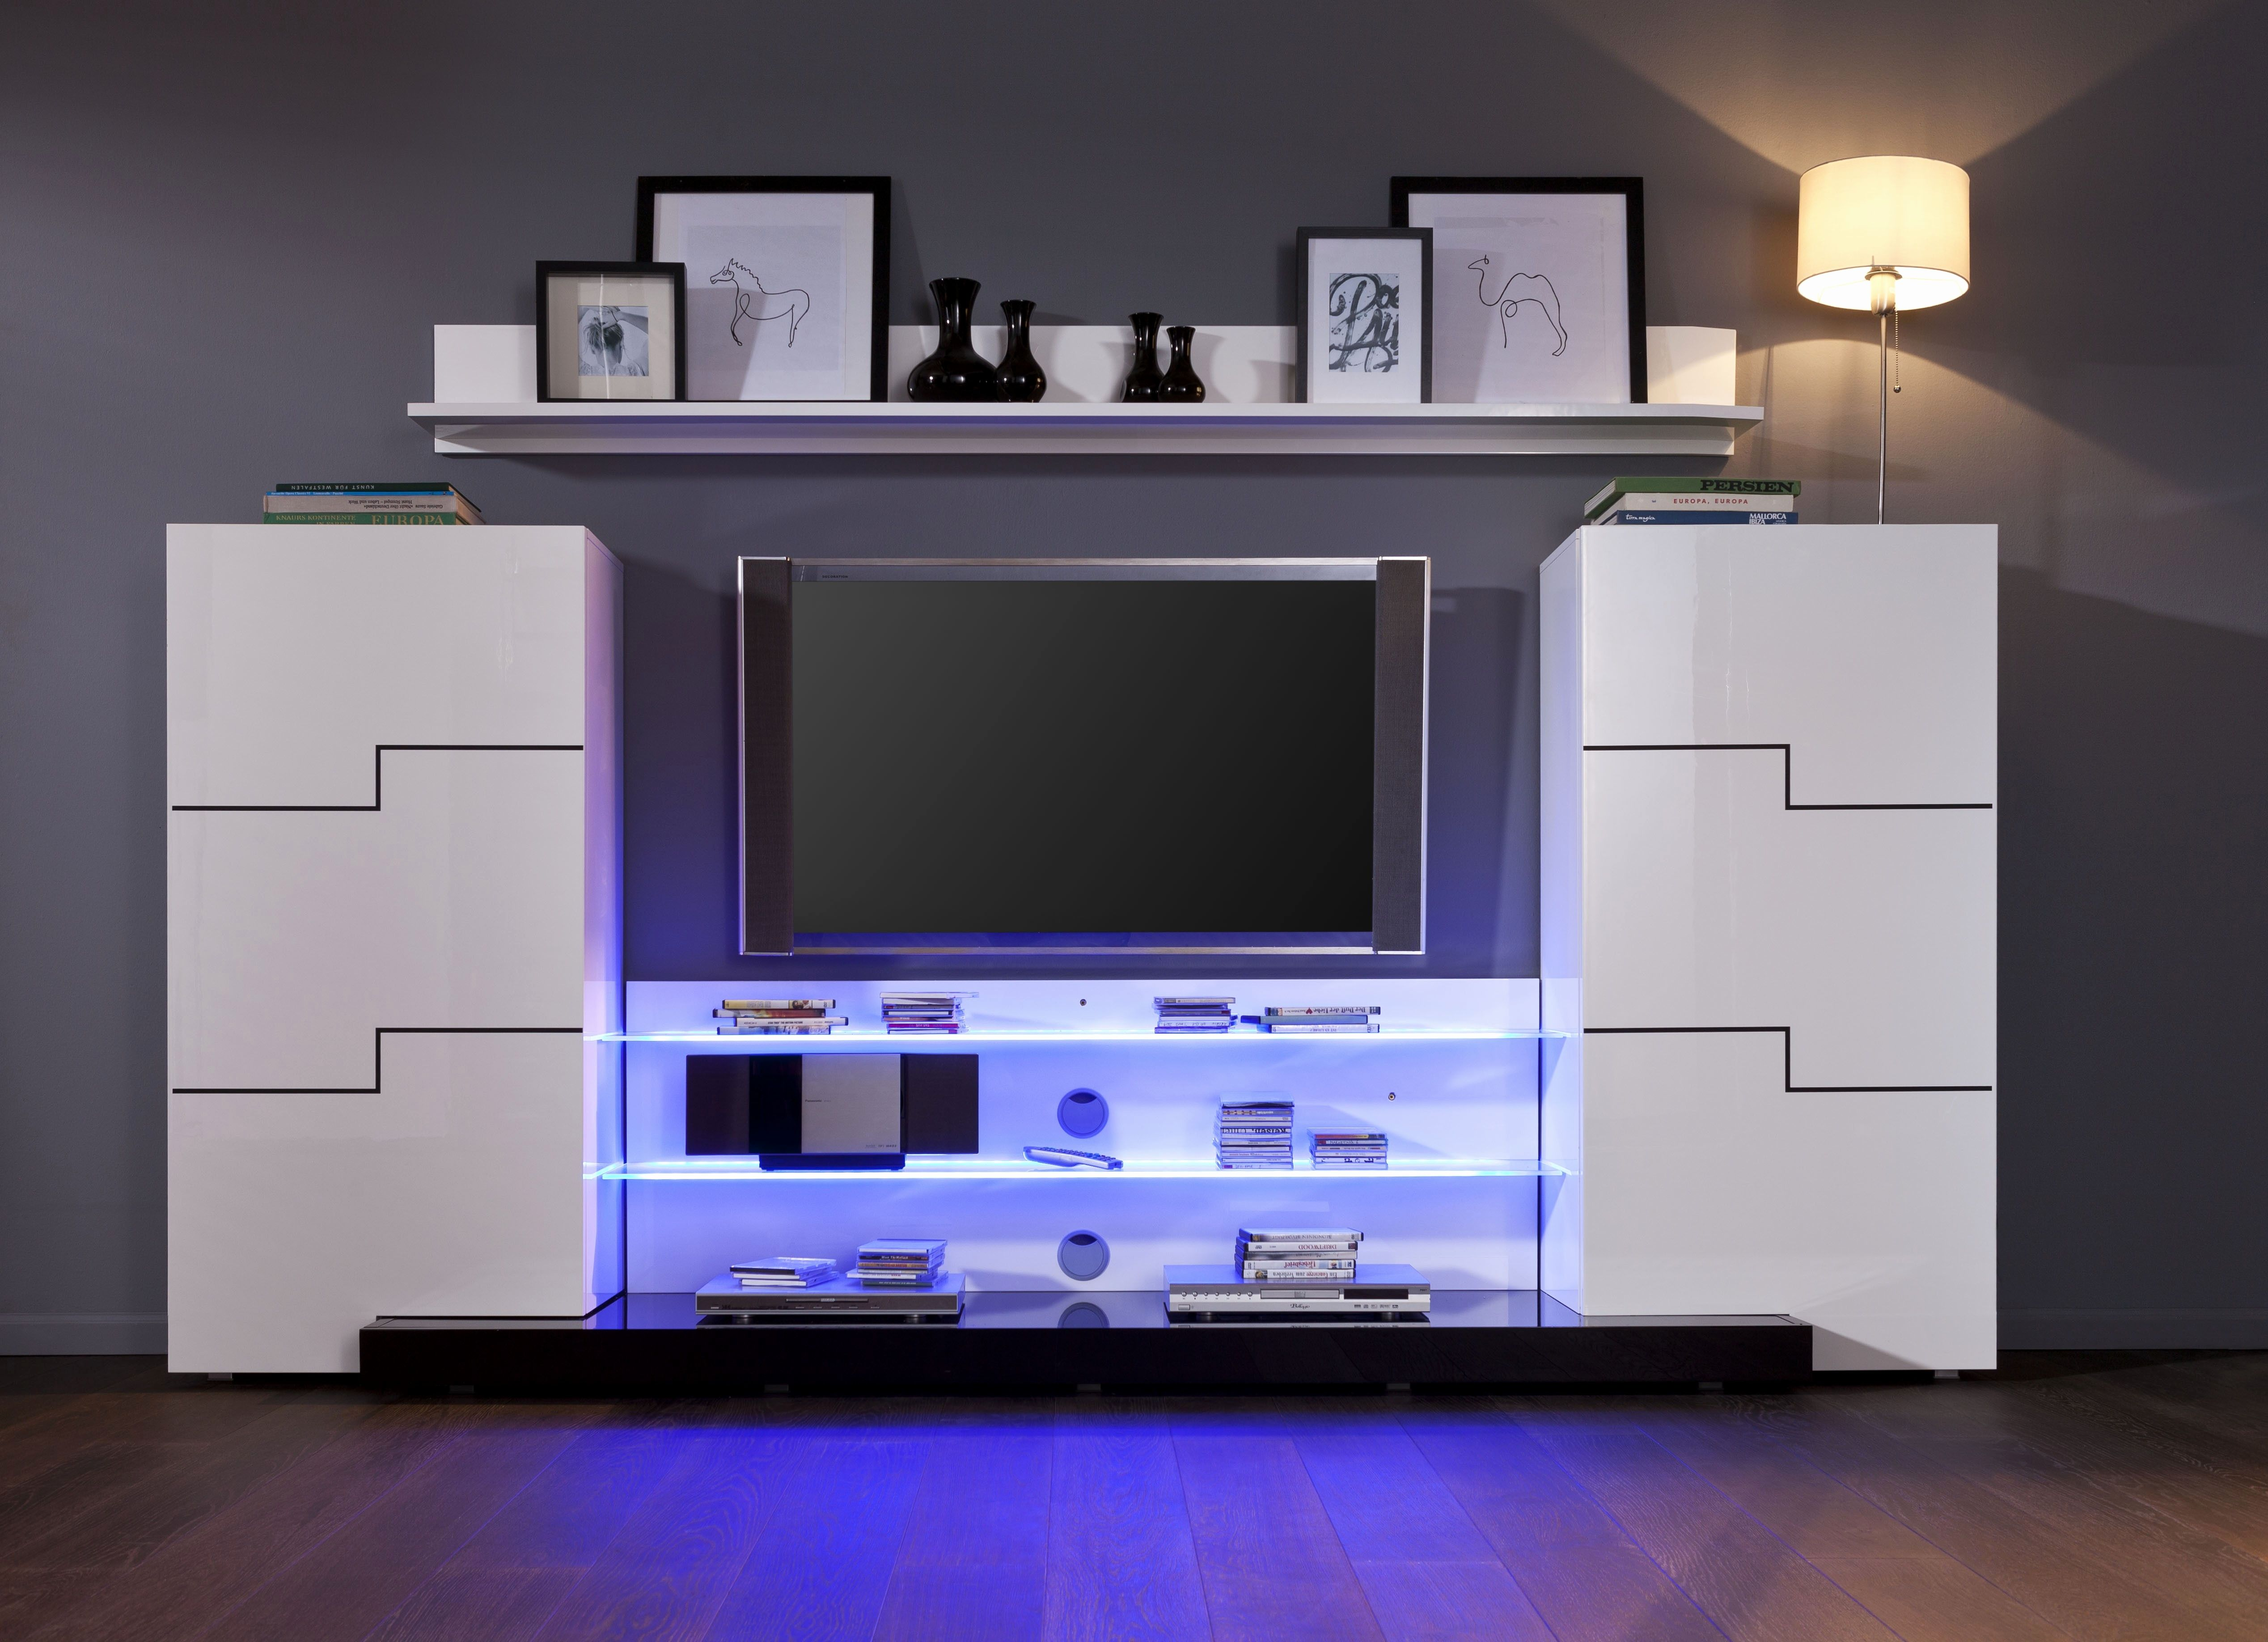 Meuble Tele Fly Awesome Magnifique Meuble Tv Design Pas Cher Blanc Decoration Fran Aise Of Meuble Te Cool Furniture Transforming Furniture Repurposed Furniture